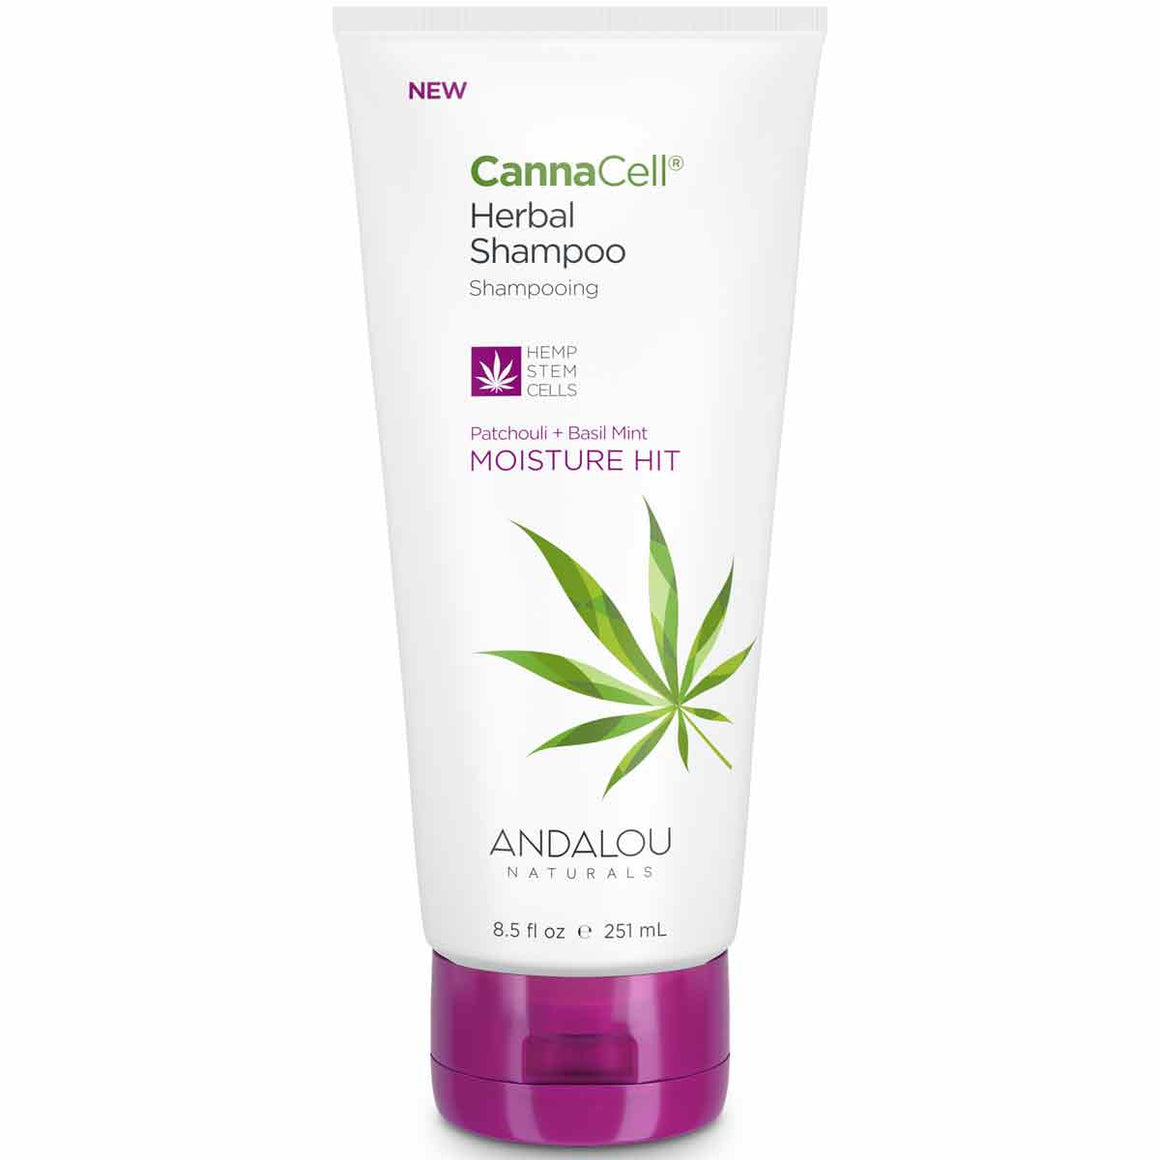 CannaCell® Herbal Shampoo - MOISTURE HIT